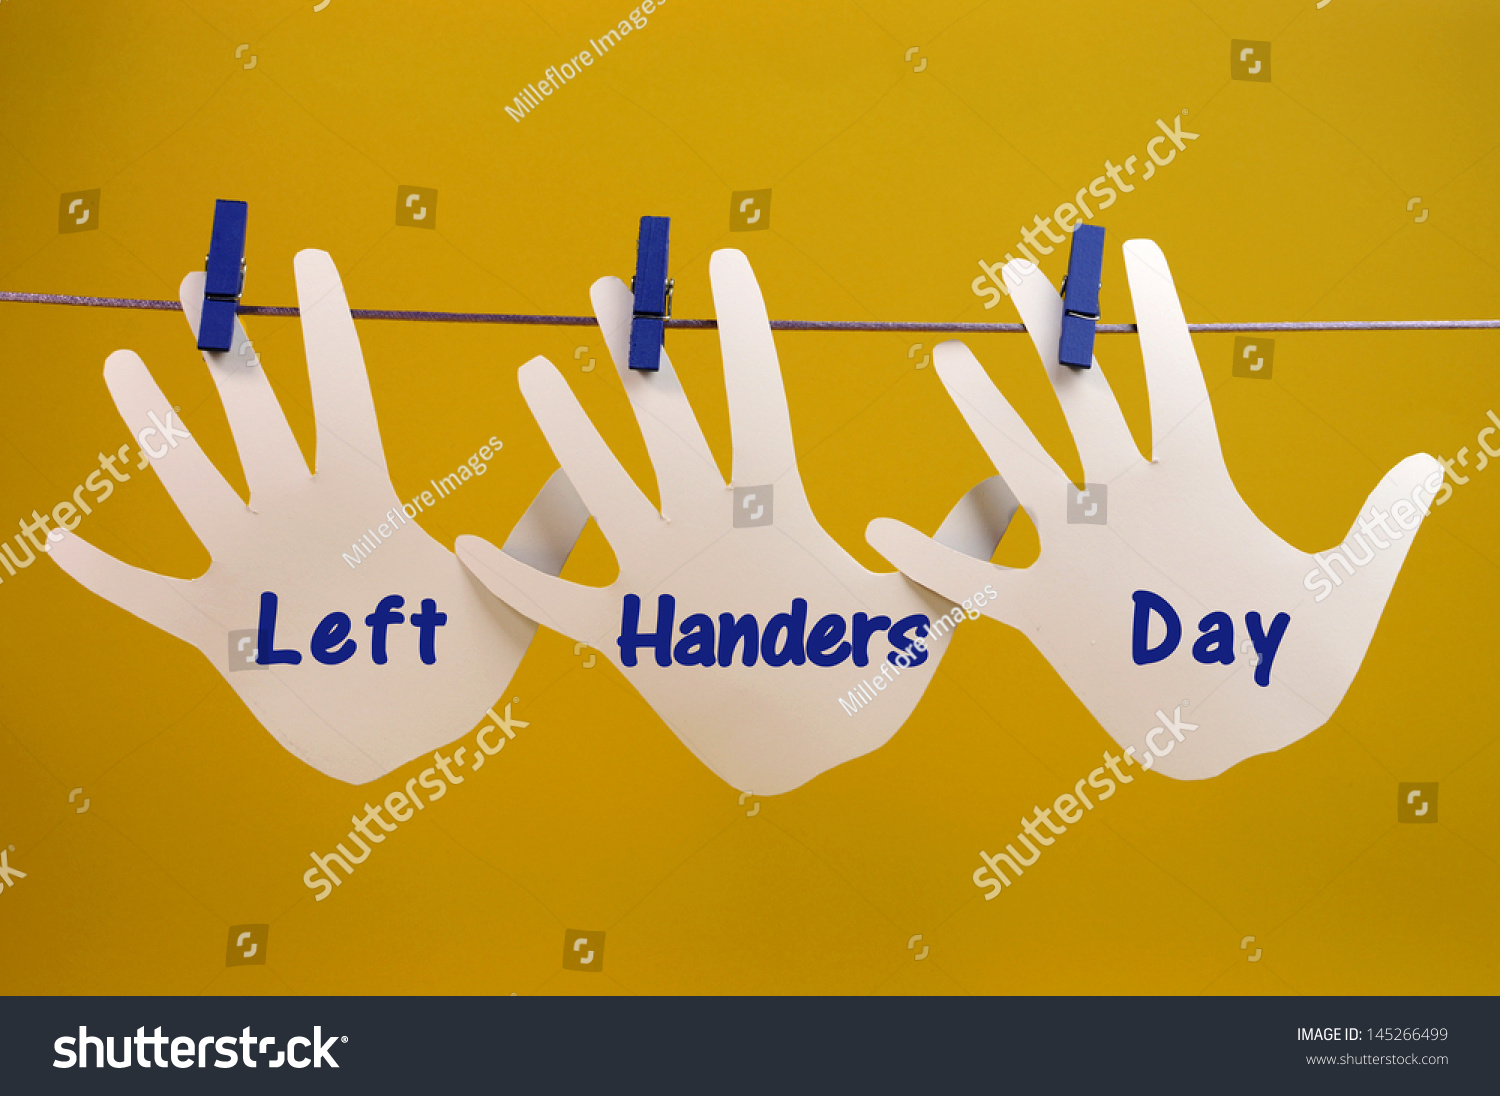 Left handers day message greeting across stock photo royalty free left handers day message greeting across left hand silhouette cards hanging from pegs on a line m4hsunfo